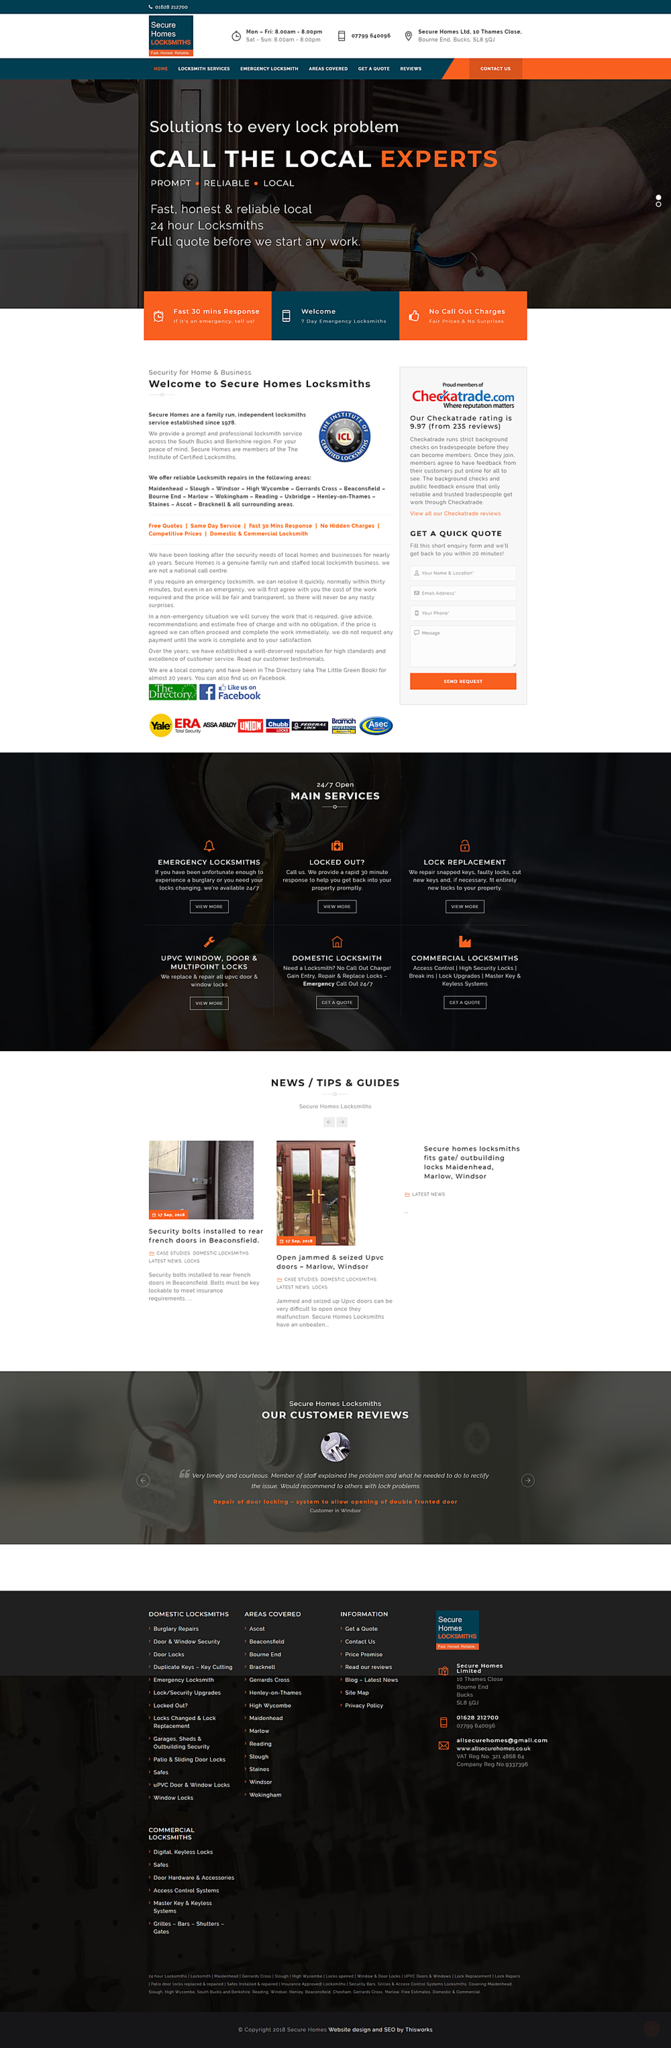 Website Design Stockport - Locksmith